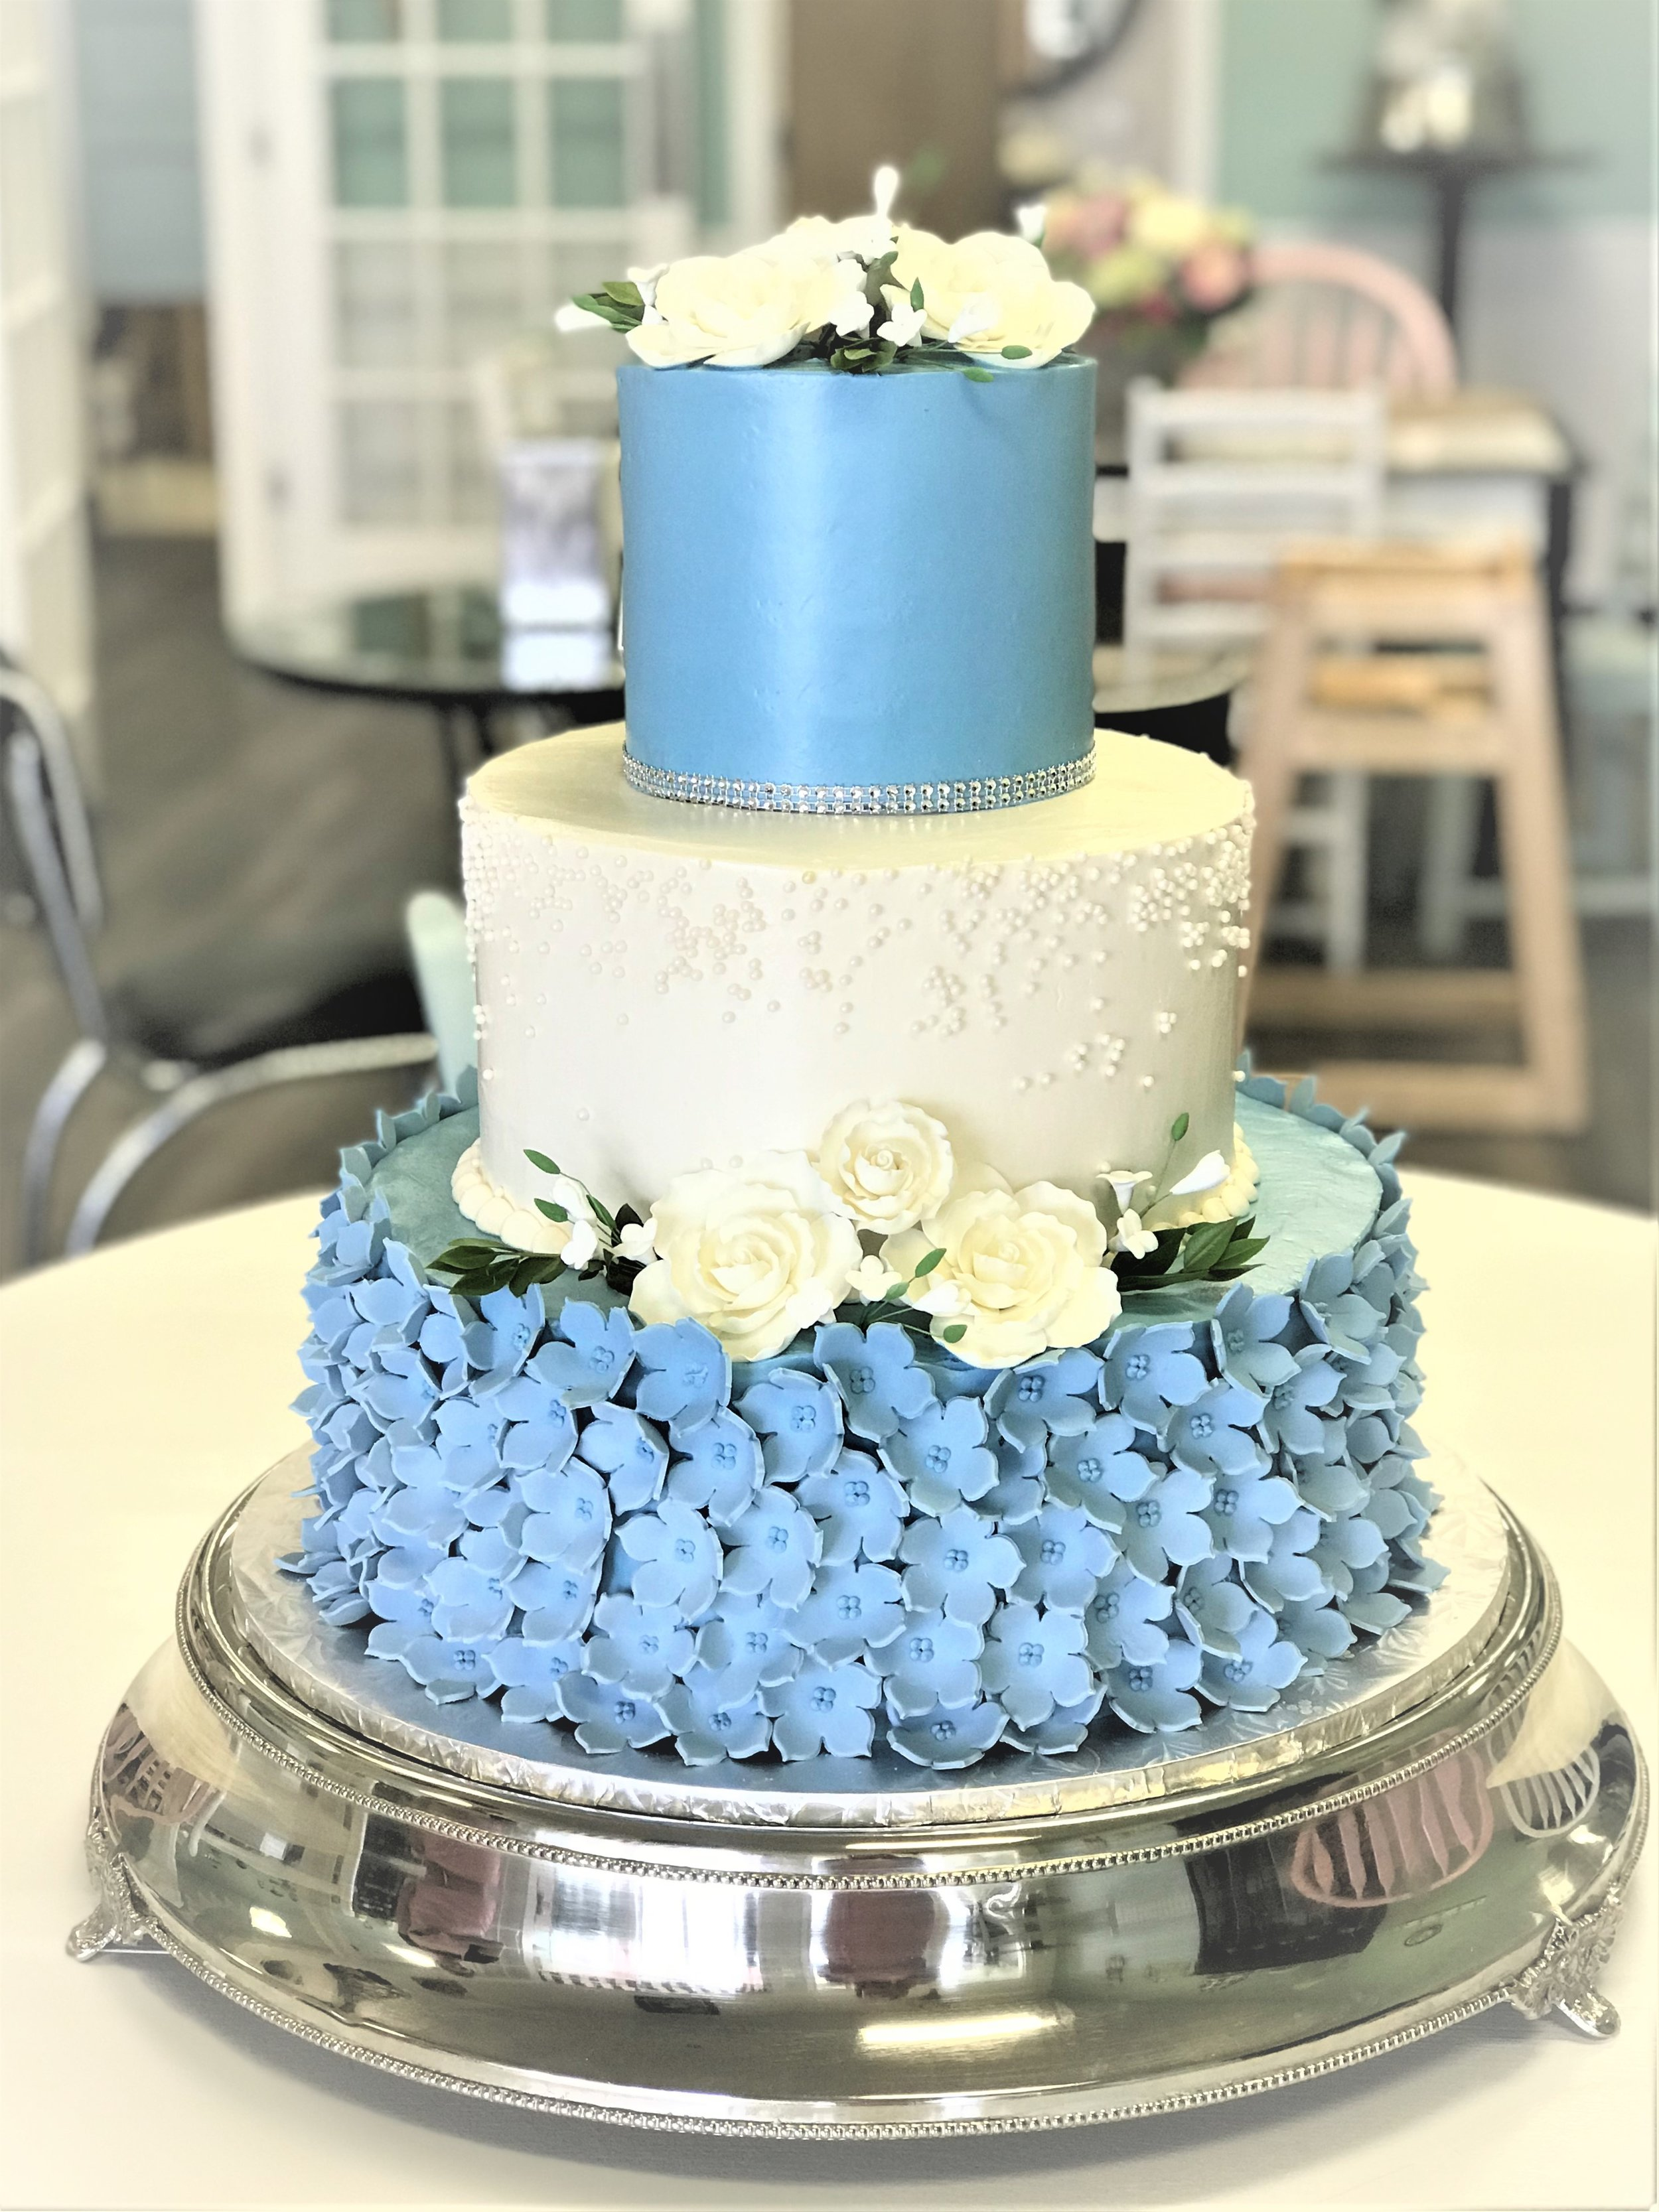 wedding cake - blue fondant flowers.jpg